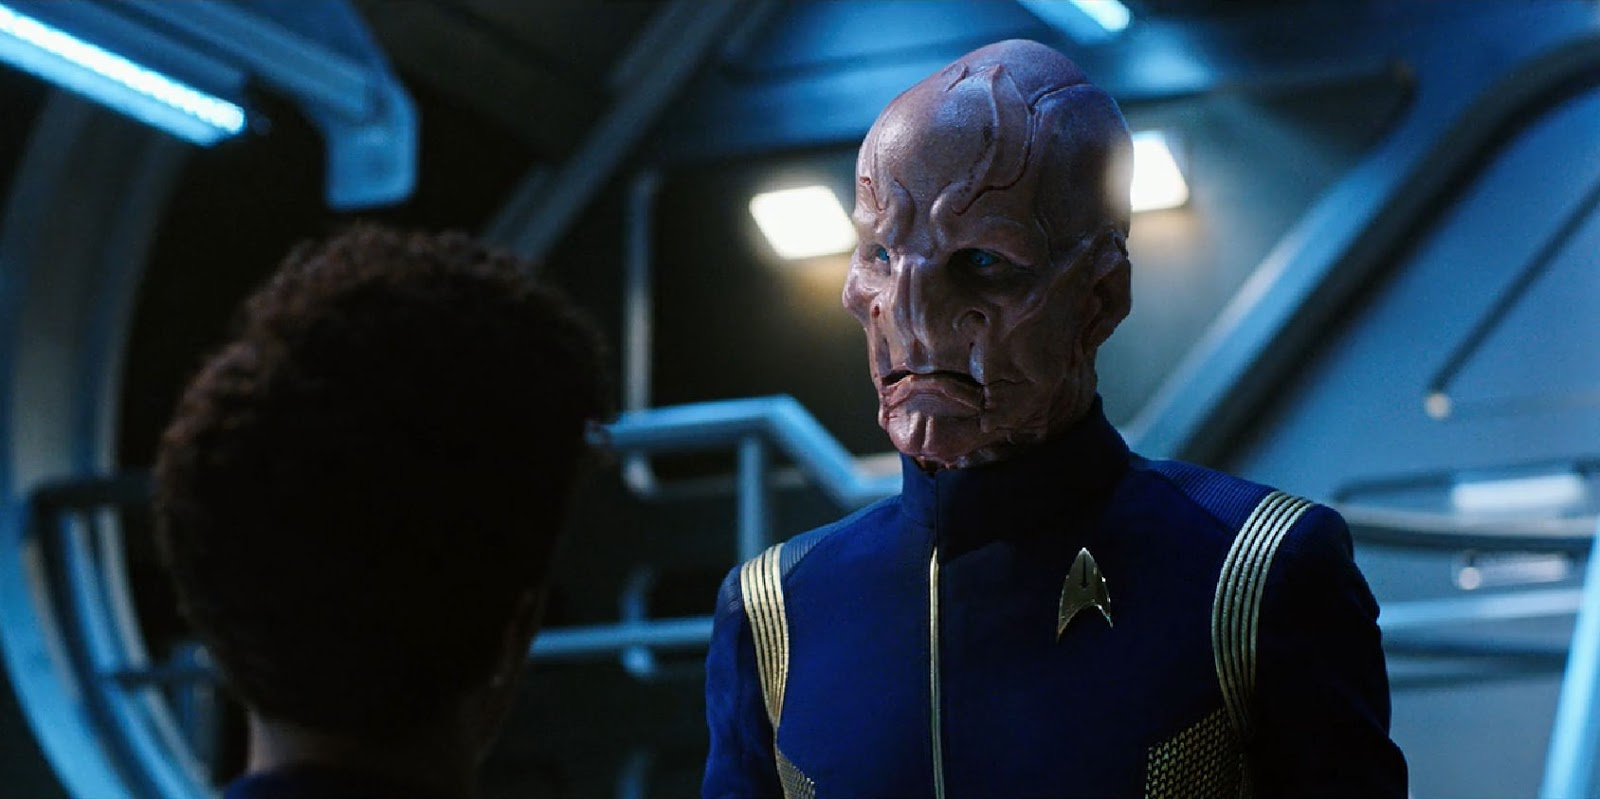 Anatomy of a Kelpian: Dissecting Characterisation in 'Star Trek: Discovery'